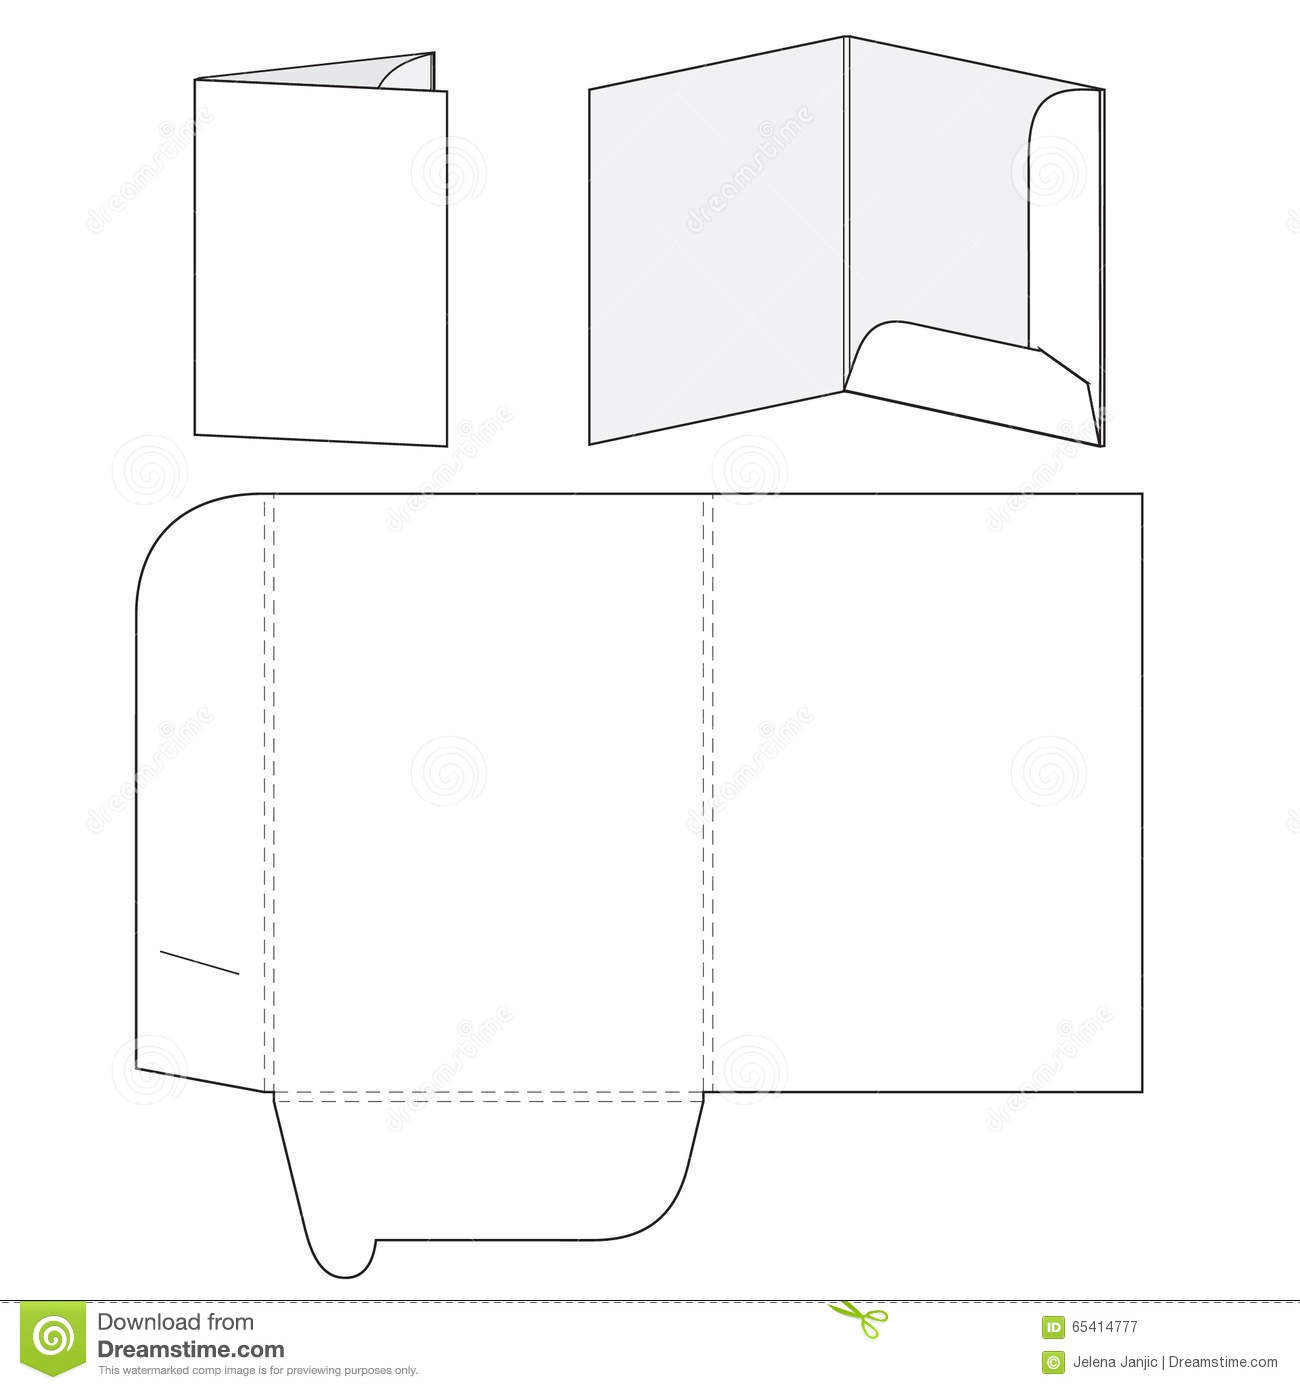 pocket folder template illustrator - blank folder template stock vector illustration of